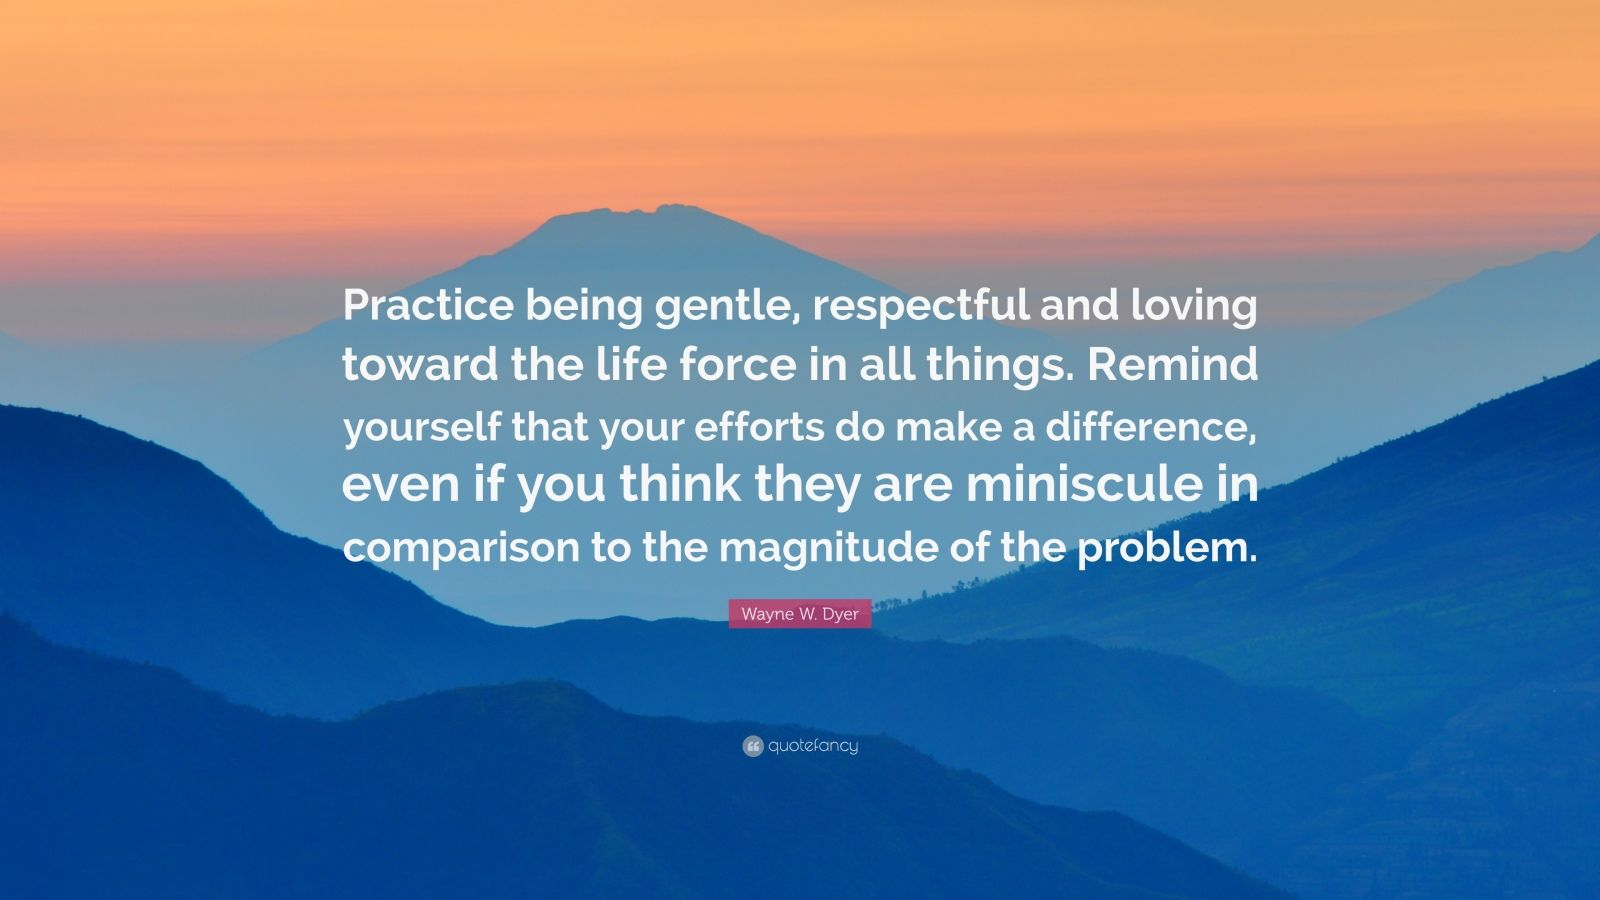 """Wayne W. Dyer Quote: """"Practice being gentle, respectful and loving toward the life force in all things. Remind yourself that your efforts do make a difference, even if you think they are miniscule in comparison to the magnitude of the problem."""""""